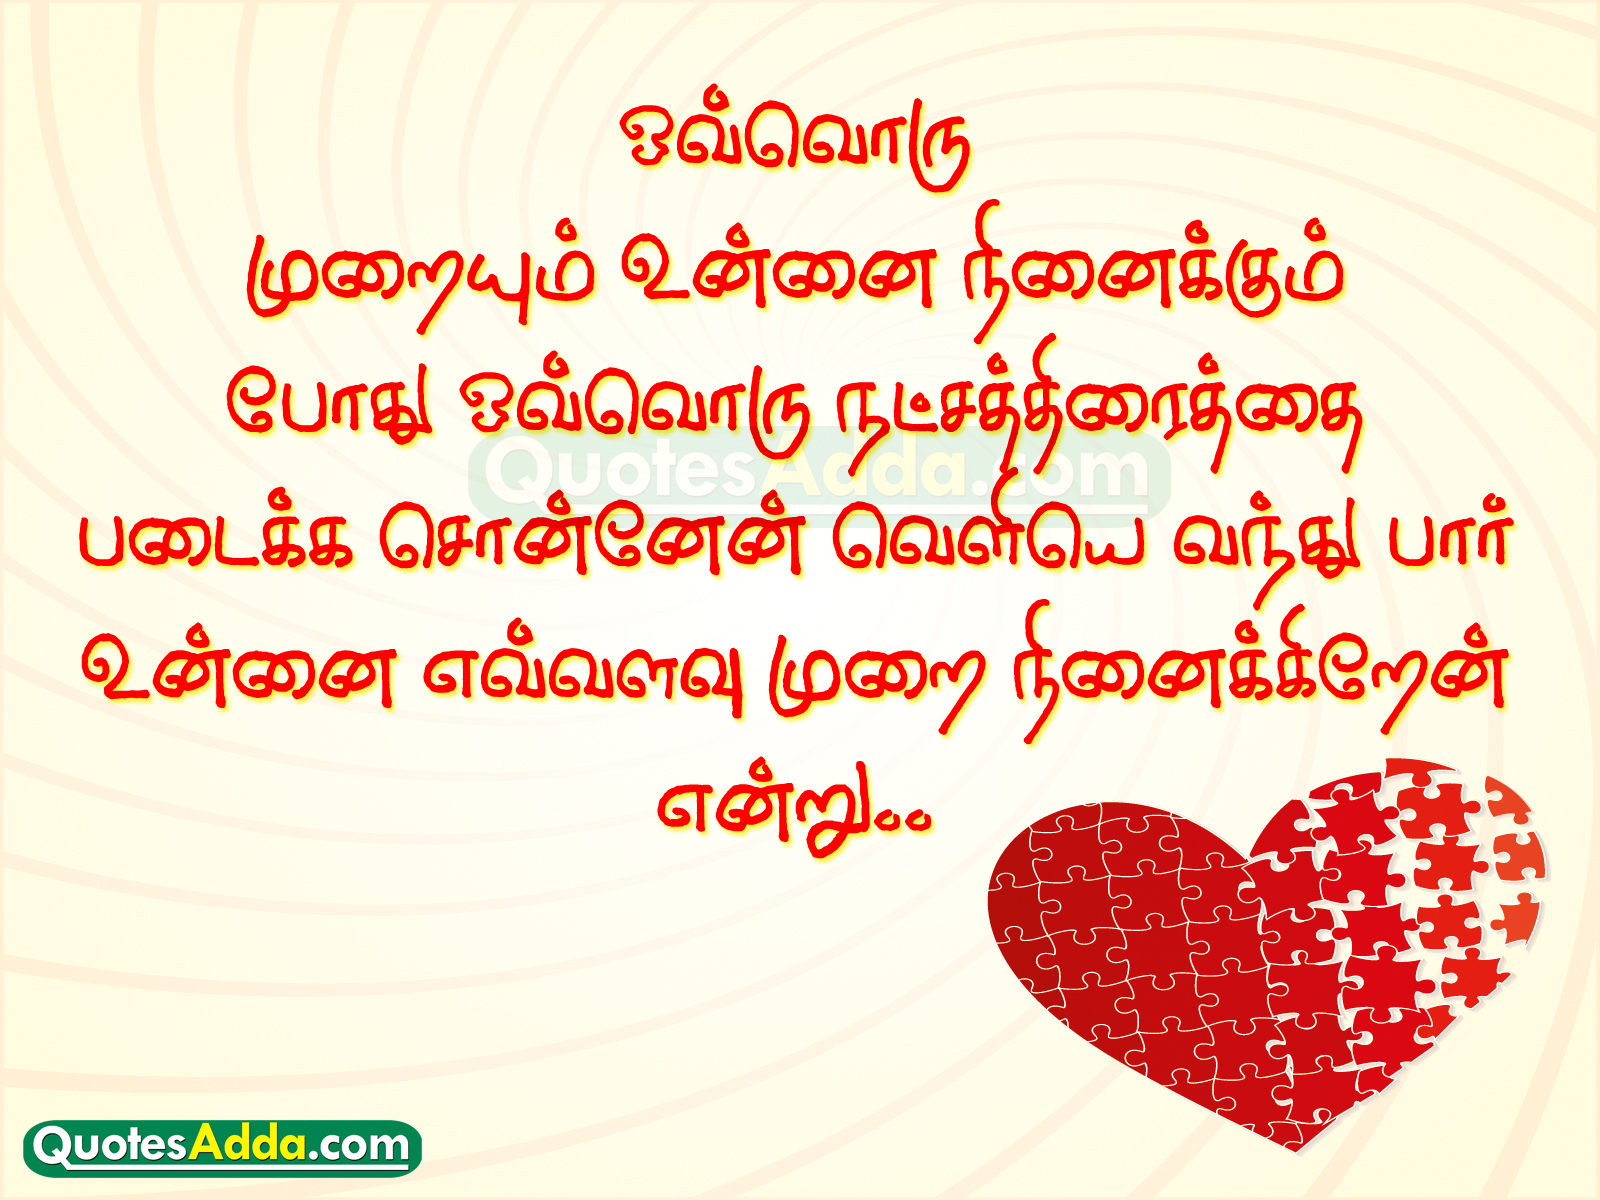 Tamil love quotes dobre for tamil love quotes tamil love quotes altavistaventures Images